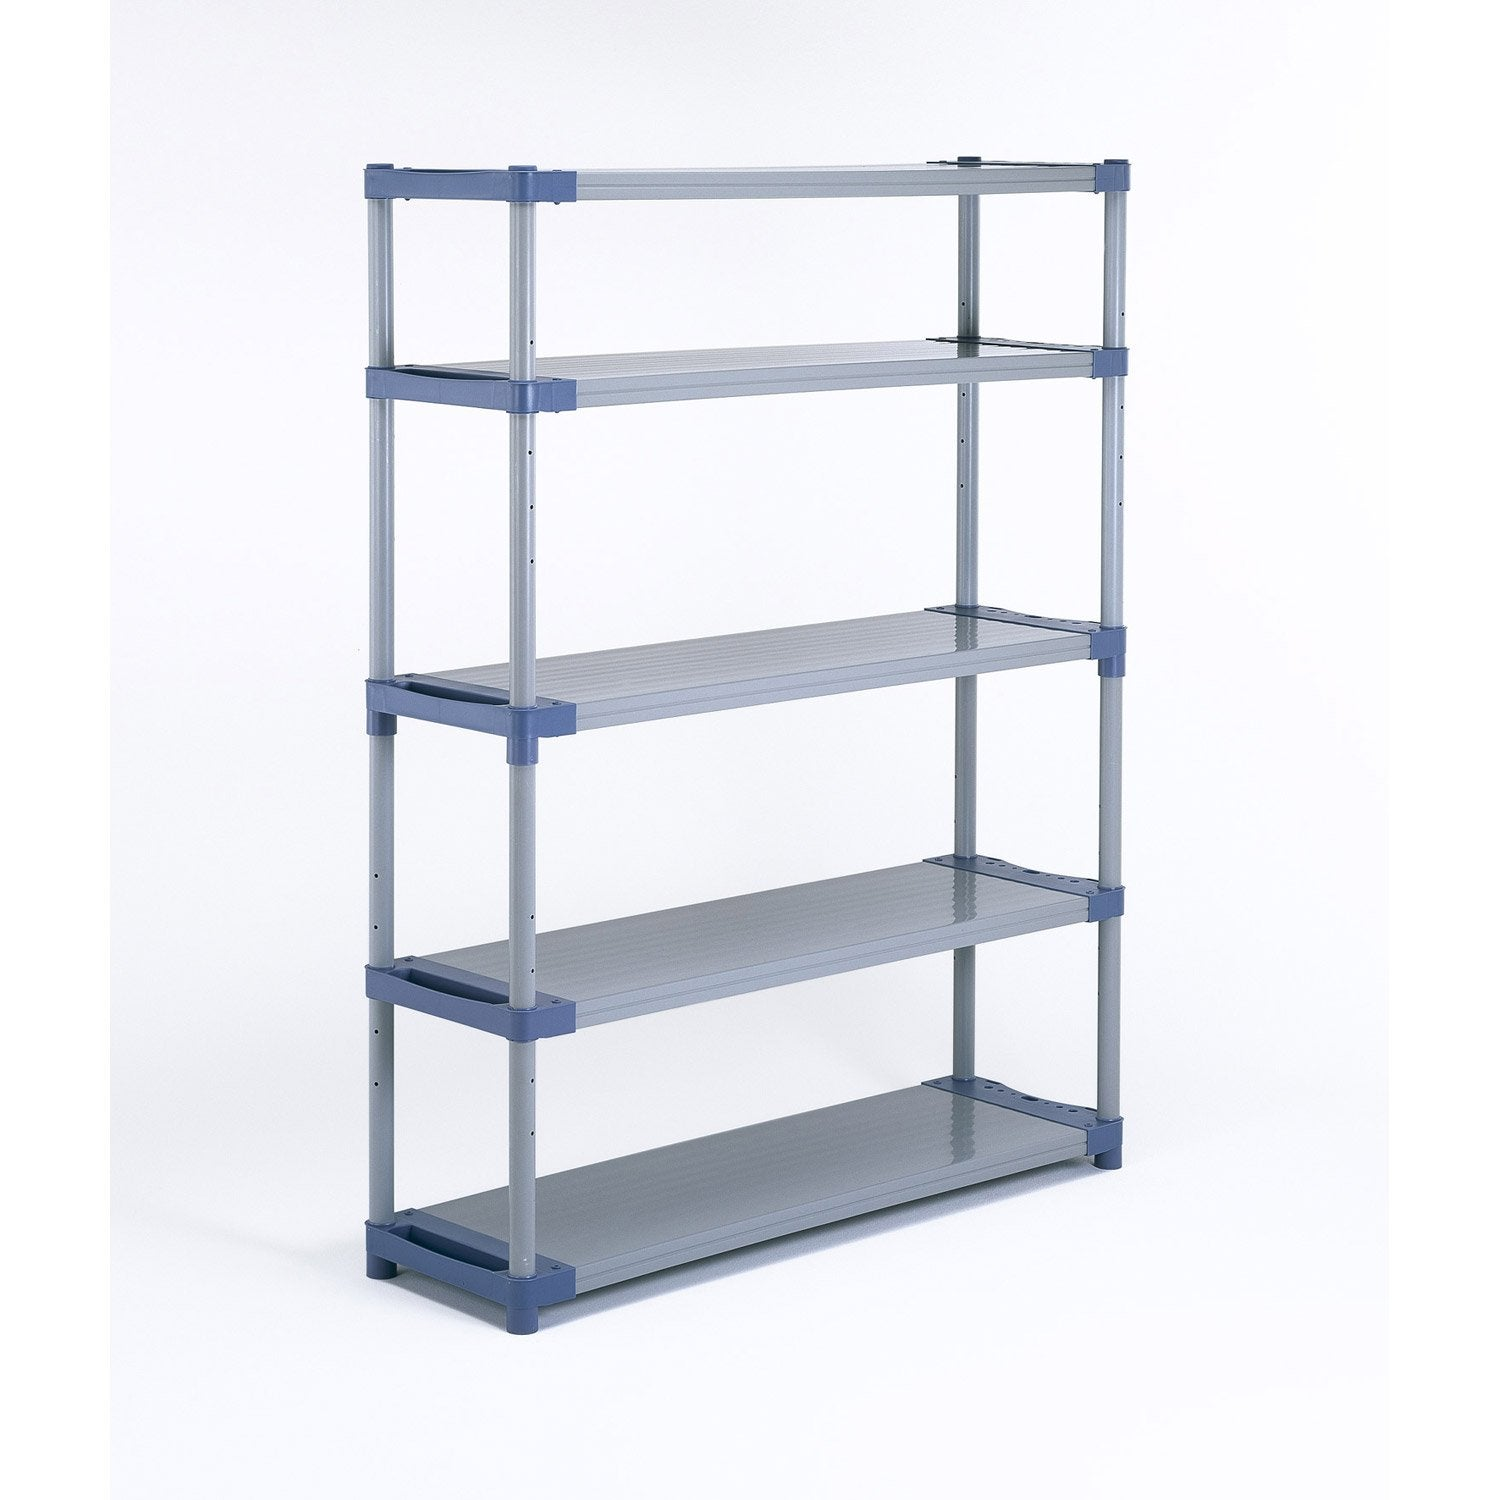 Etag re r sine grosfillex 5 tablettes gris bleu for Etagere 50 cm de large